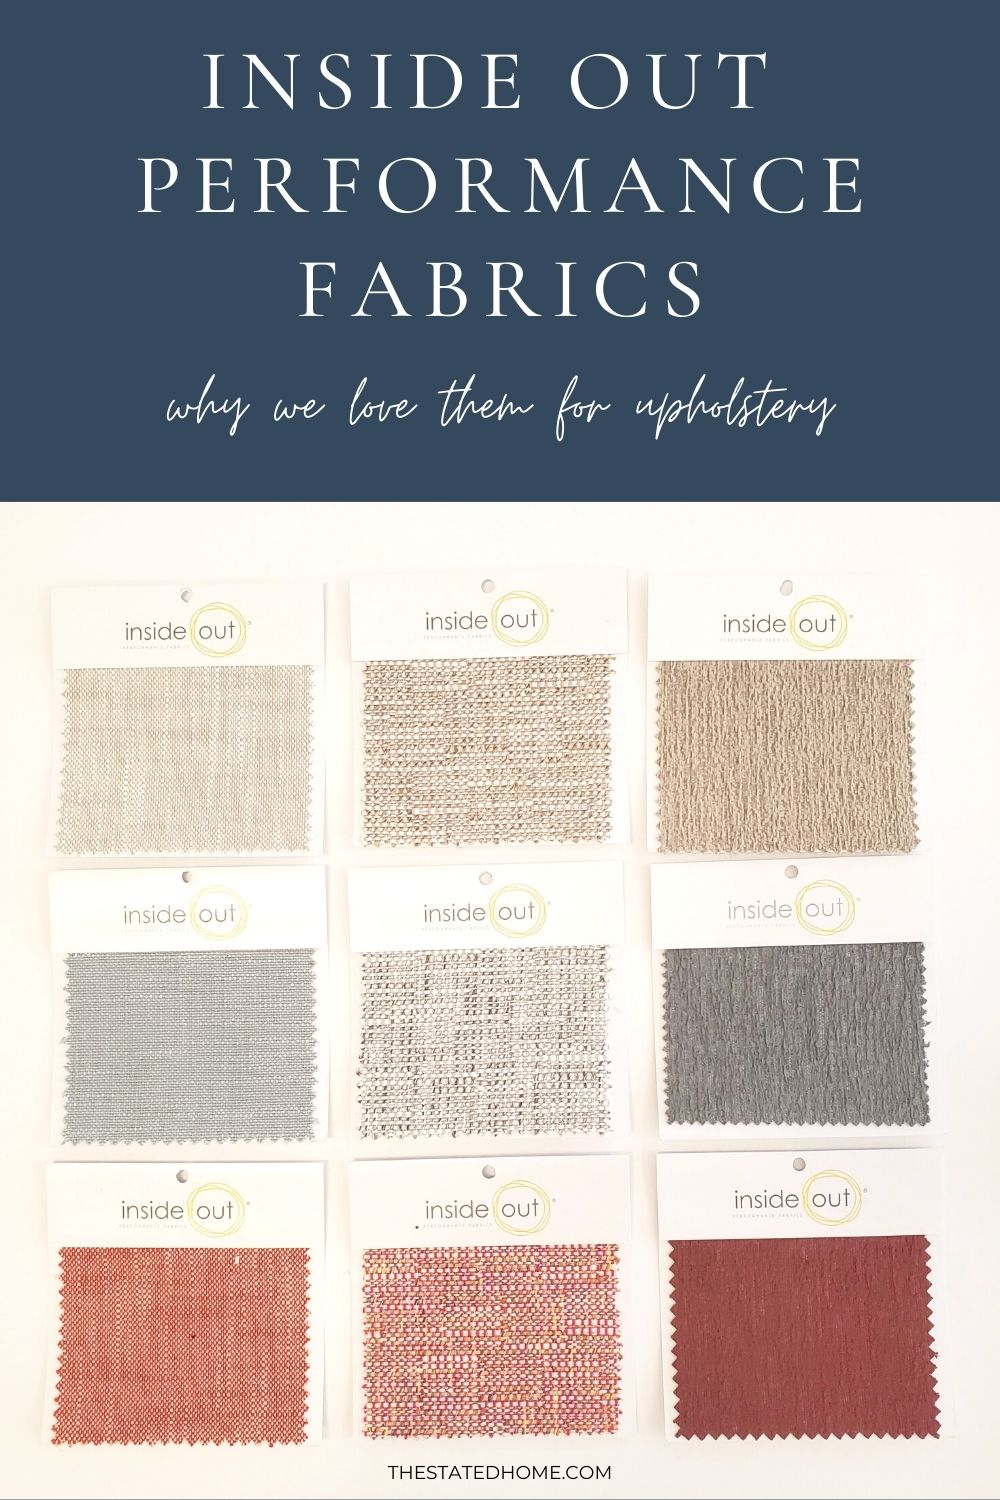 INSIDE OUT FABRIC: WHY WE LOVE THIS PERFORMANCE FABRIC